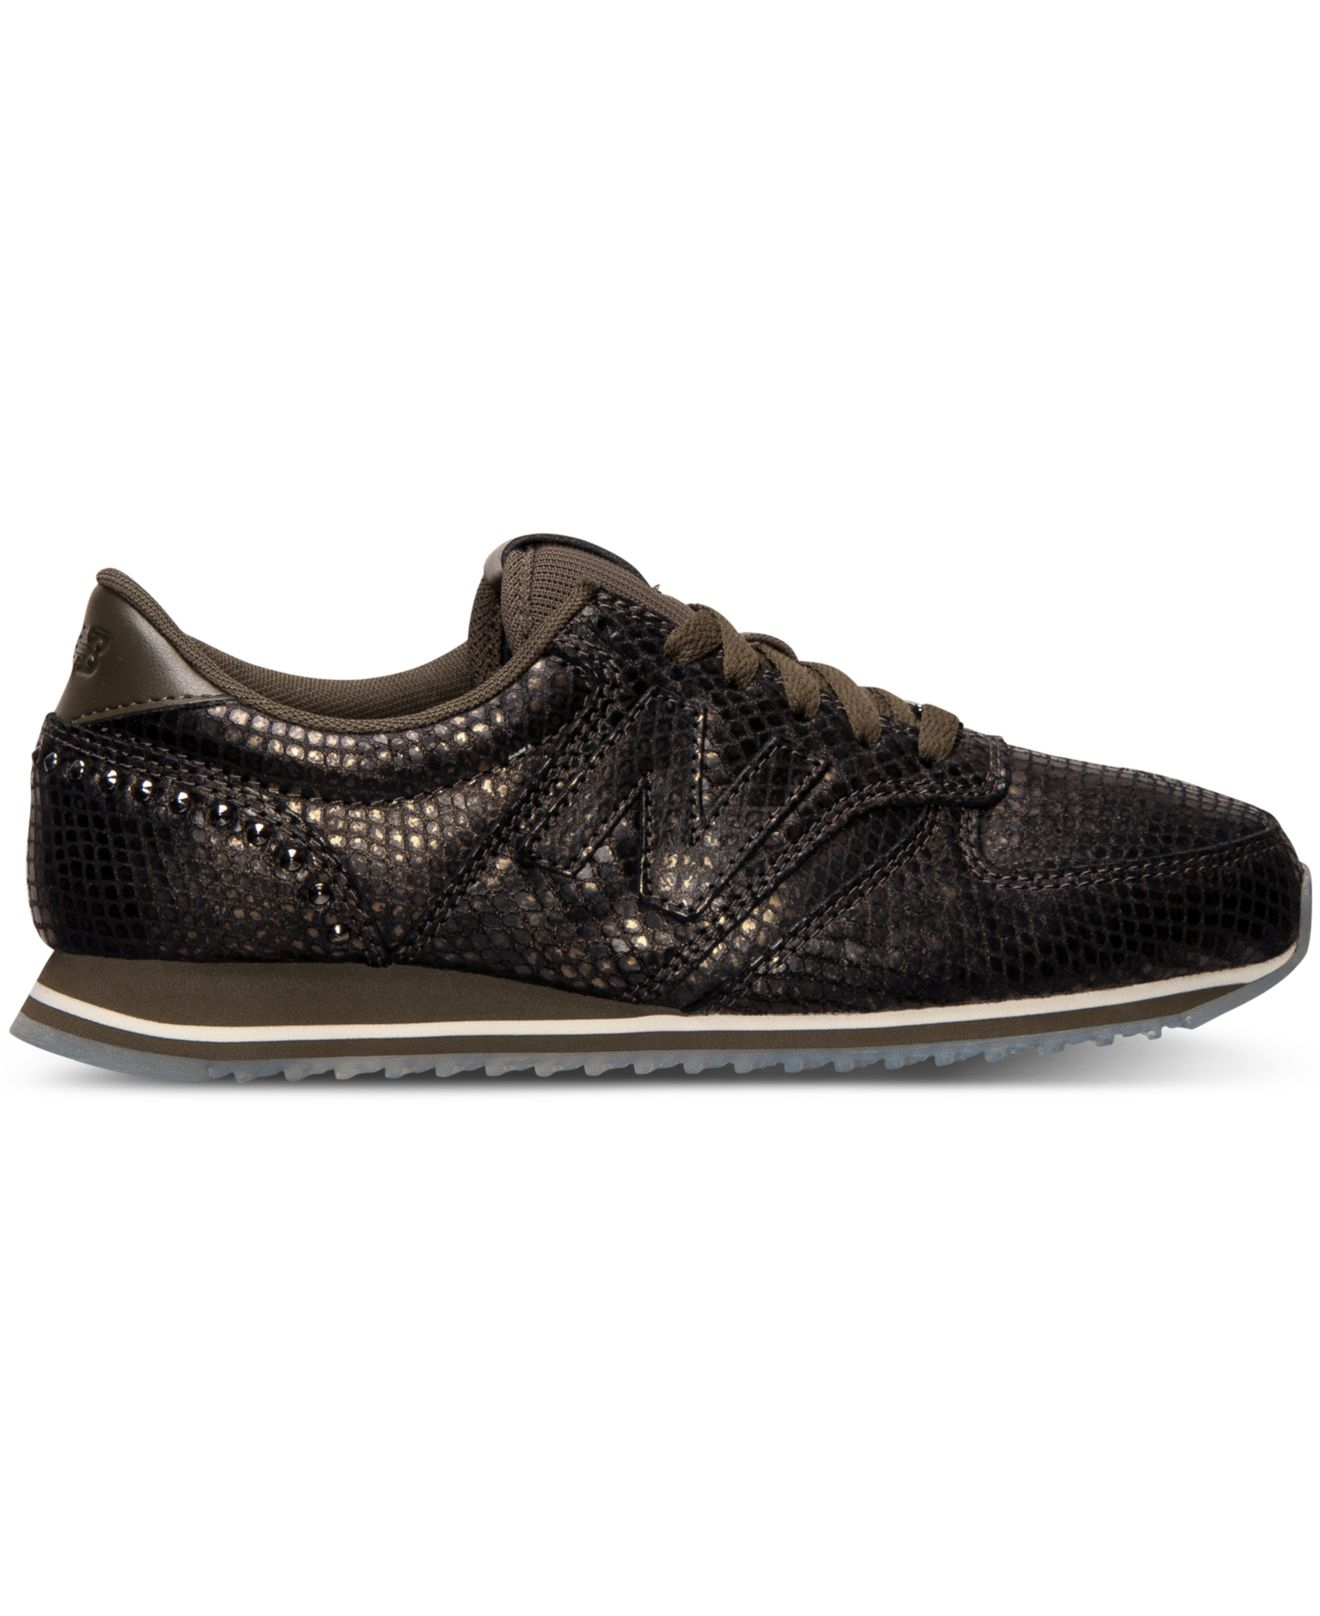 new balance u420 sneakers for women